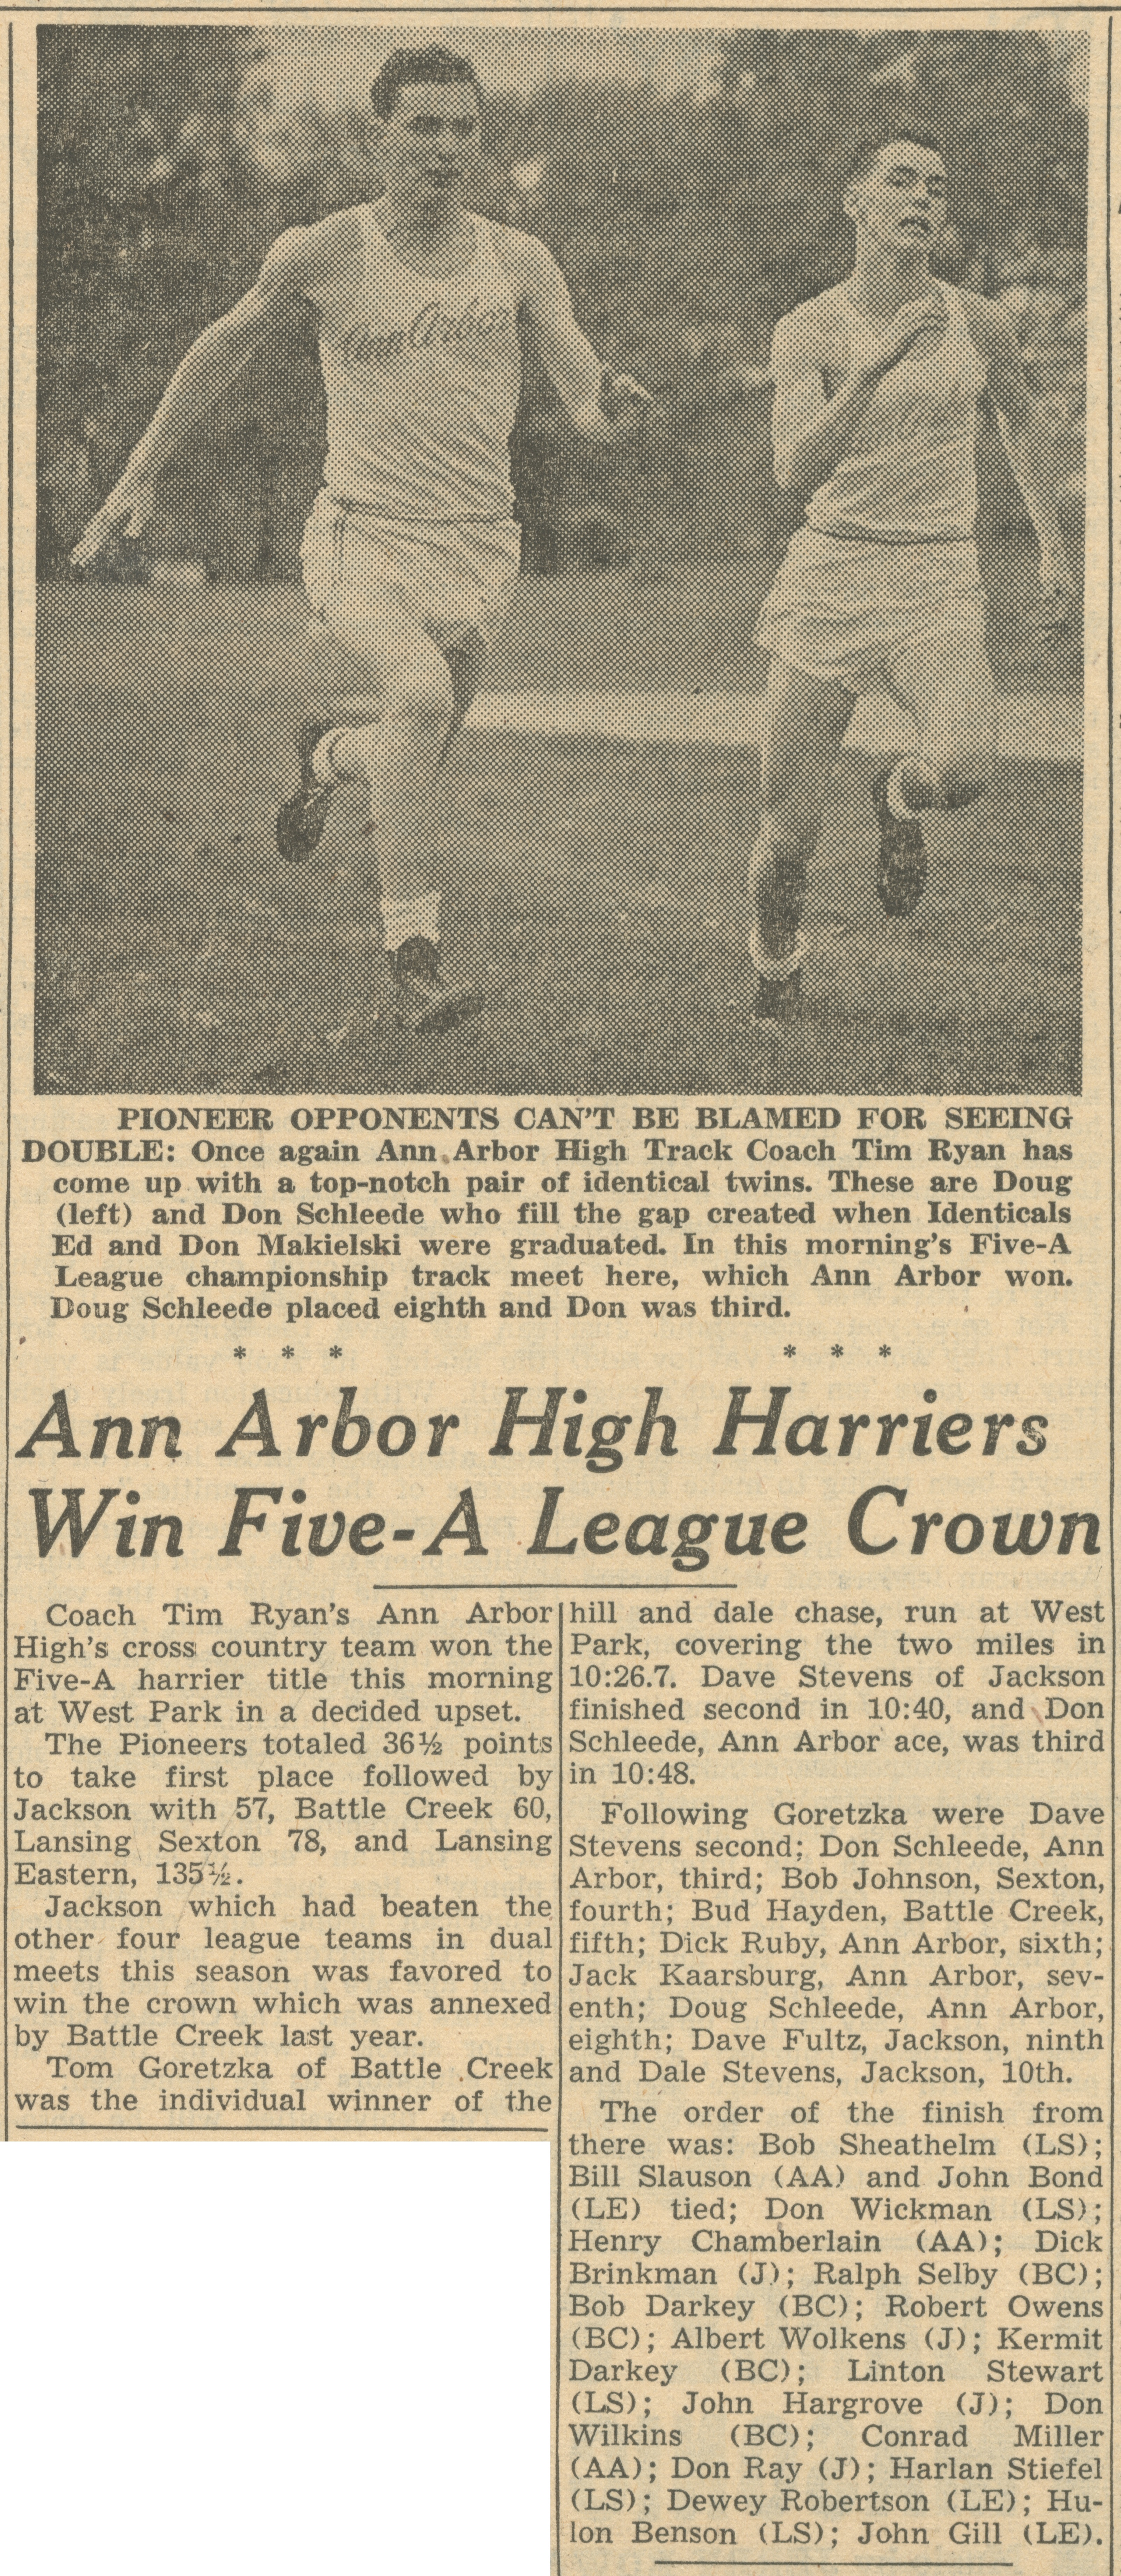 Ann Arbor High Harriers Win Five-A League Crown image